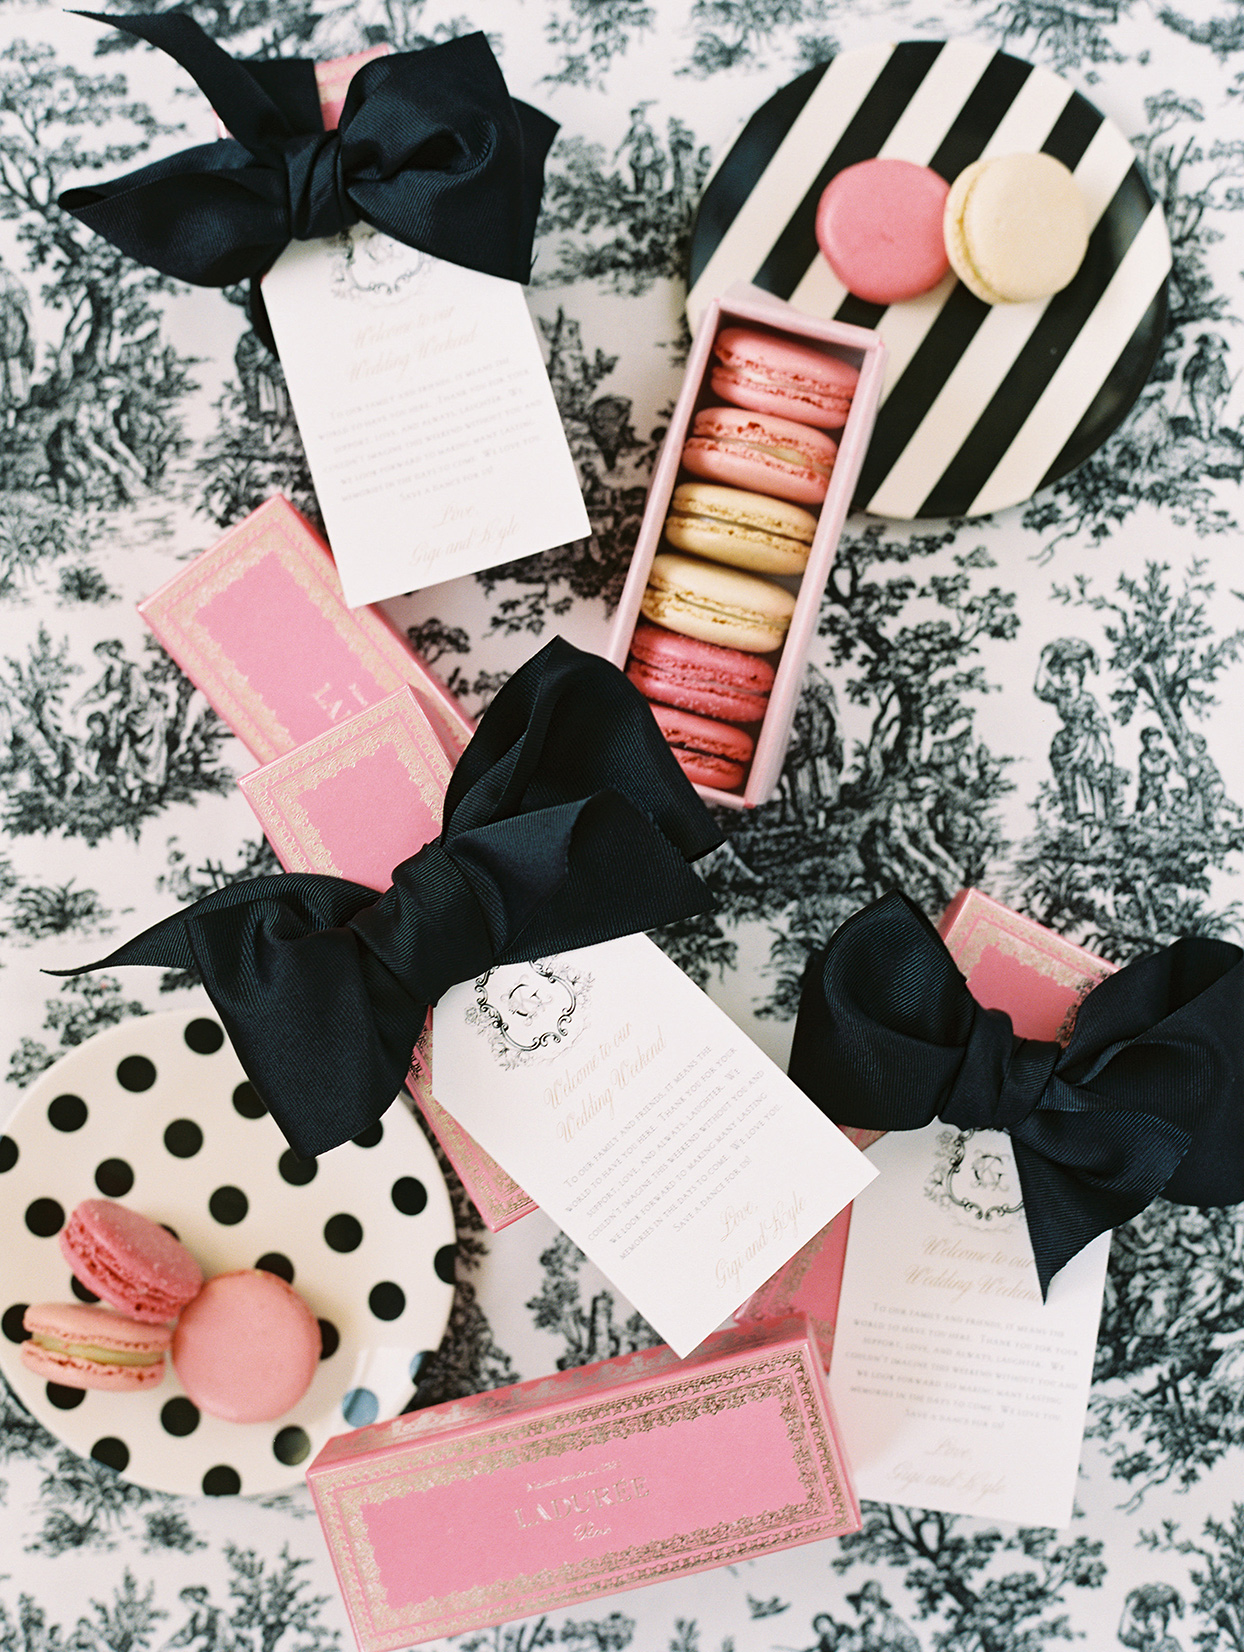 gigi kyle wedding french favors in pink, black and white